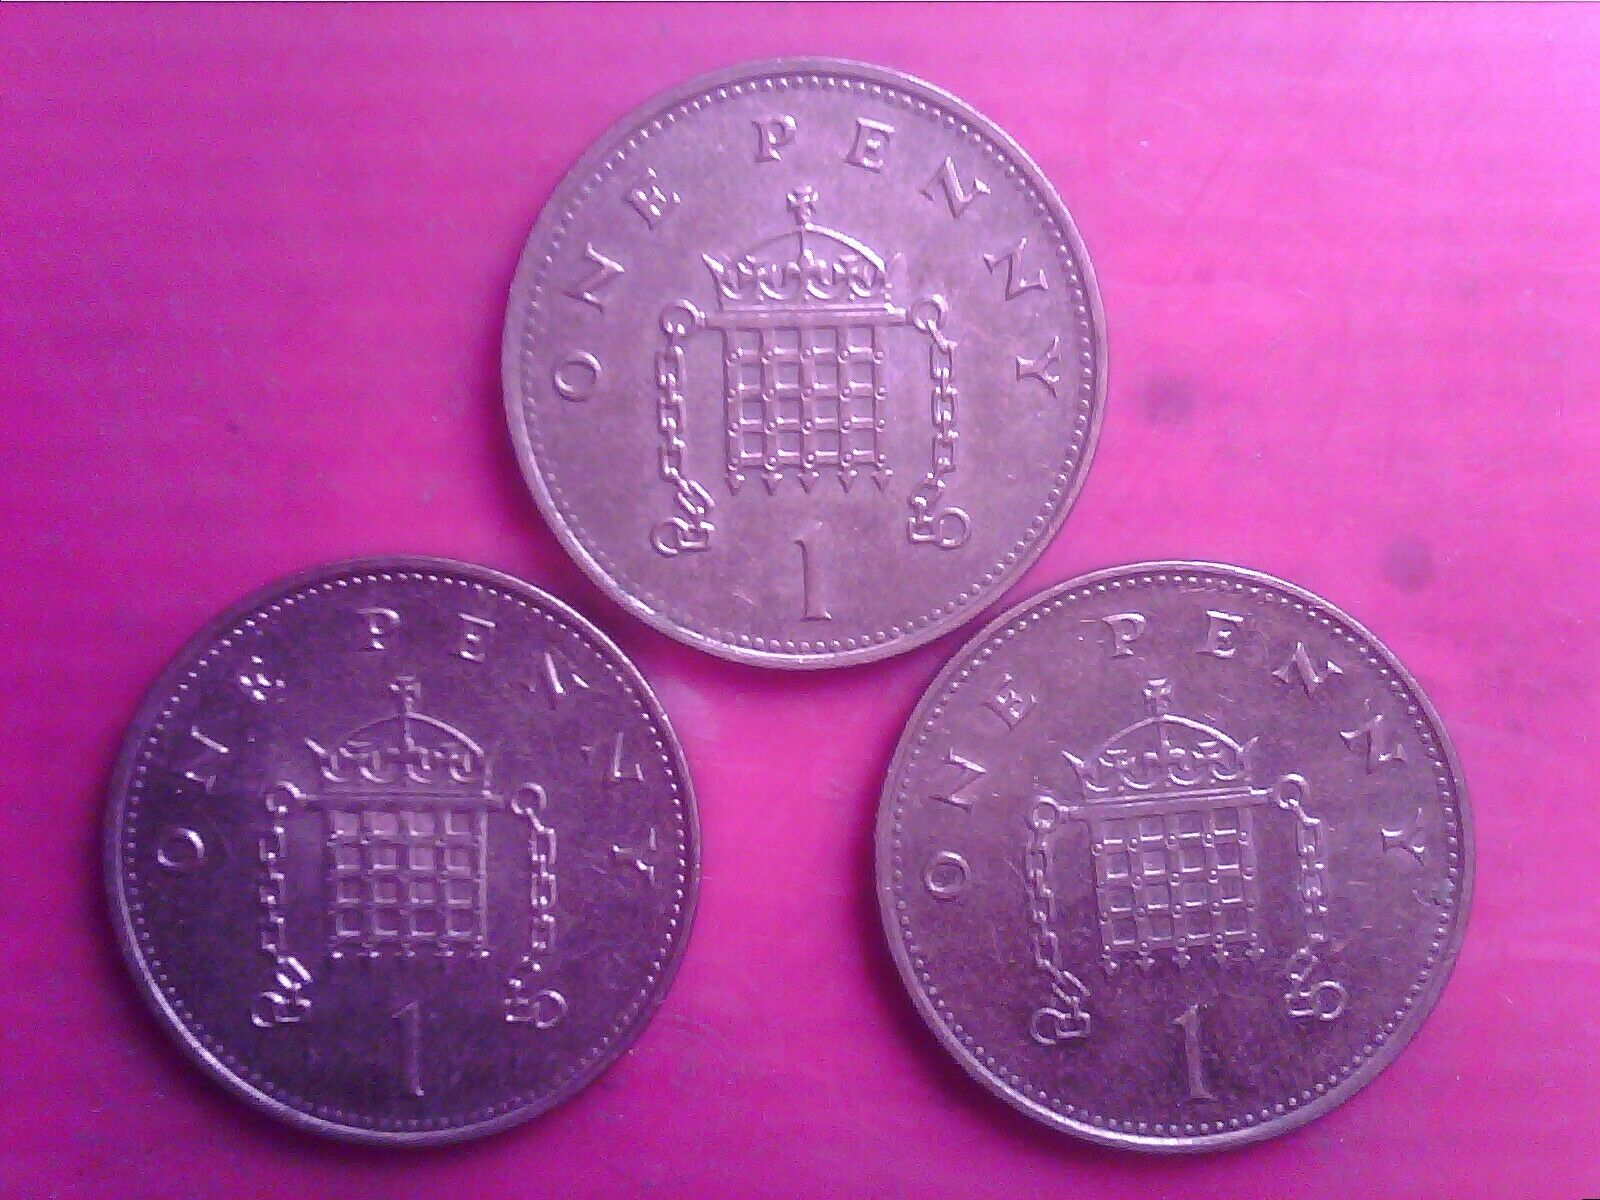 GREAT BRITAIN ONE PENNY 1996 1997 1998 MAY31F - Image 1